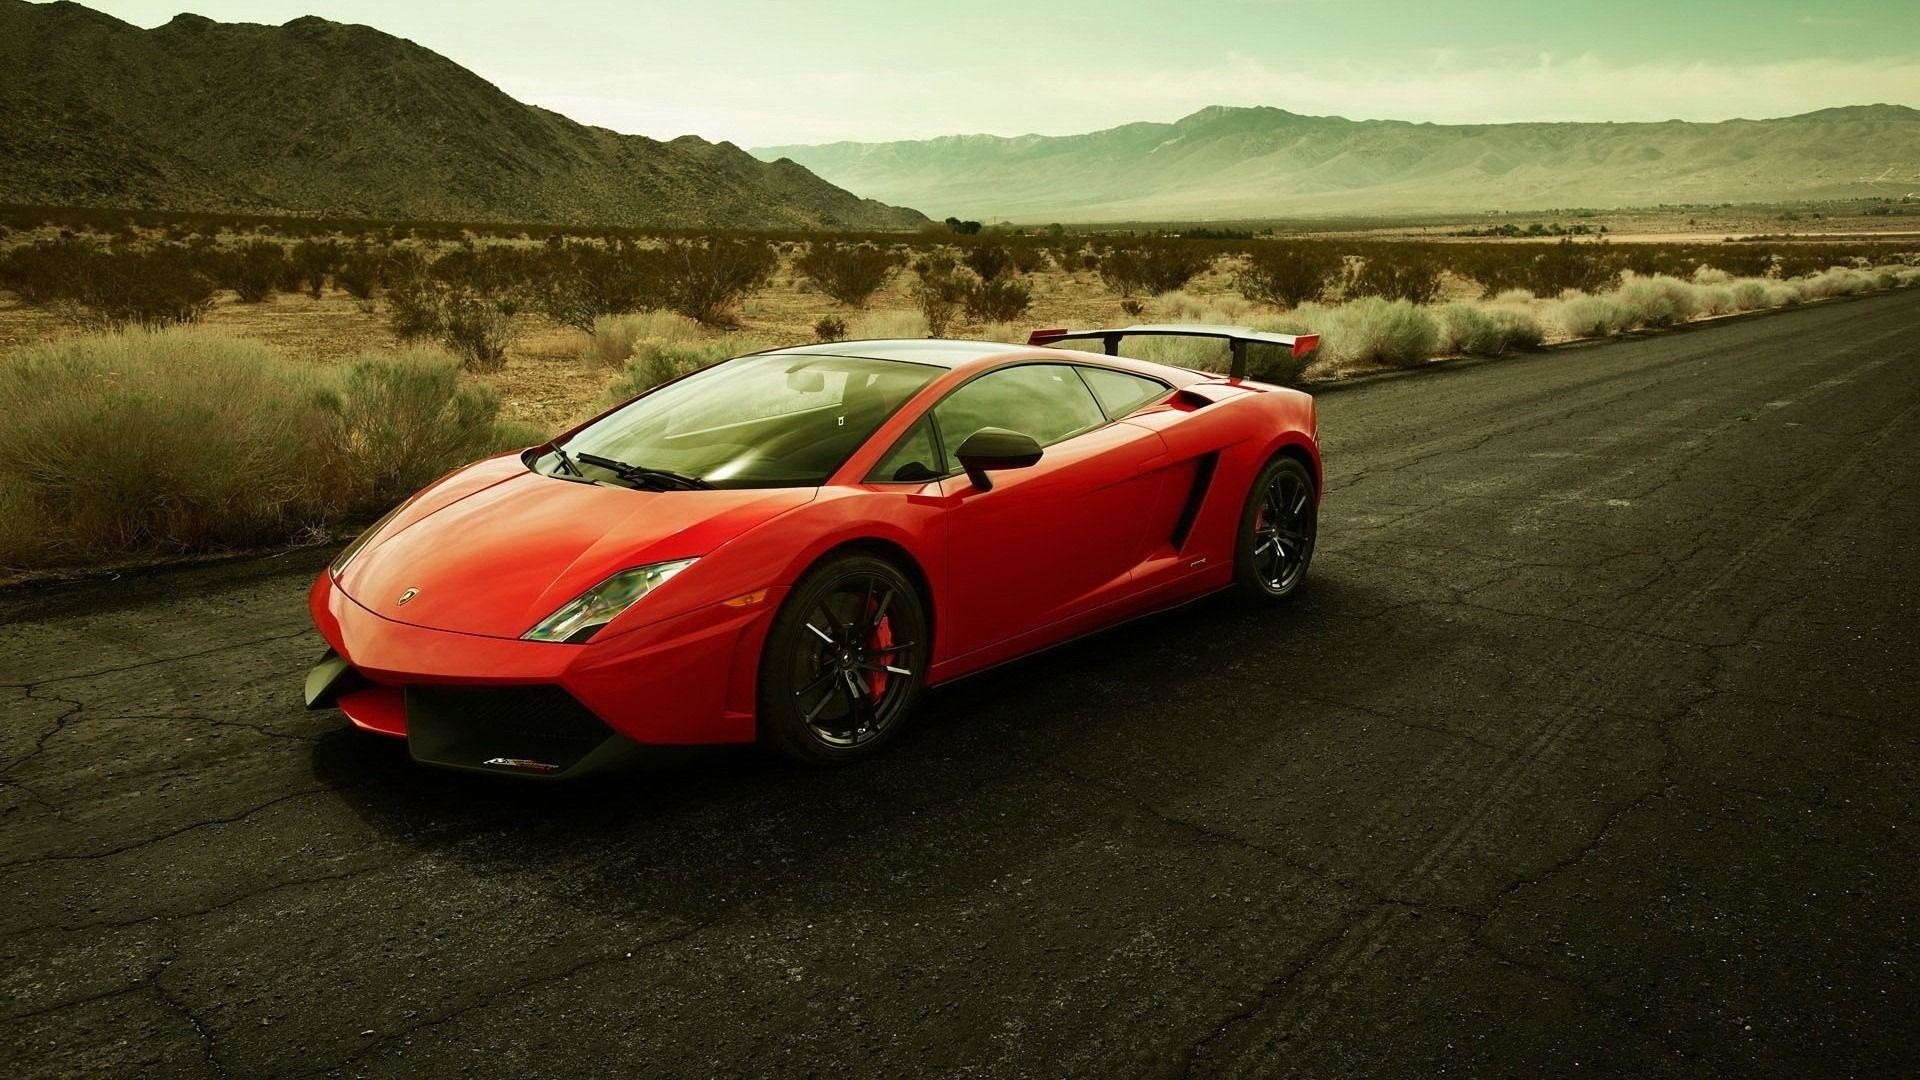 1920x1080 Lamborghini Gallardo HD Wallpapers High Resolution For Desktop